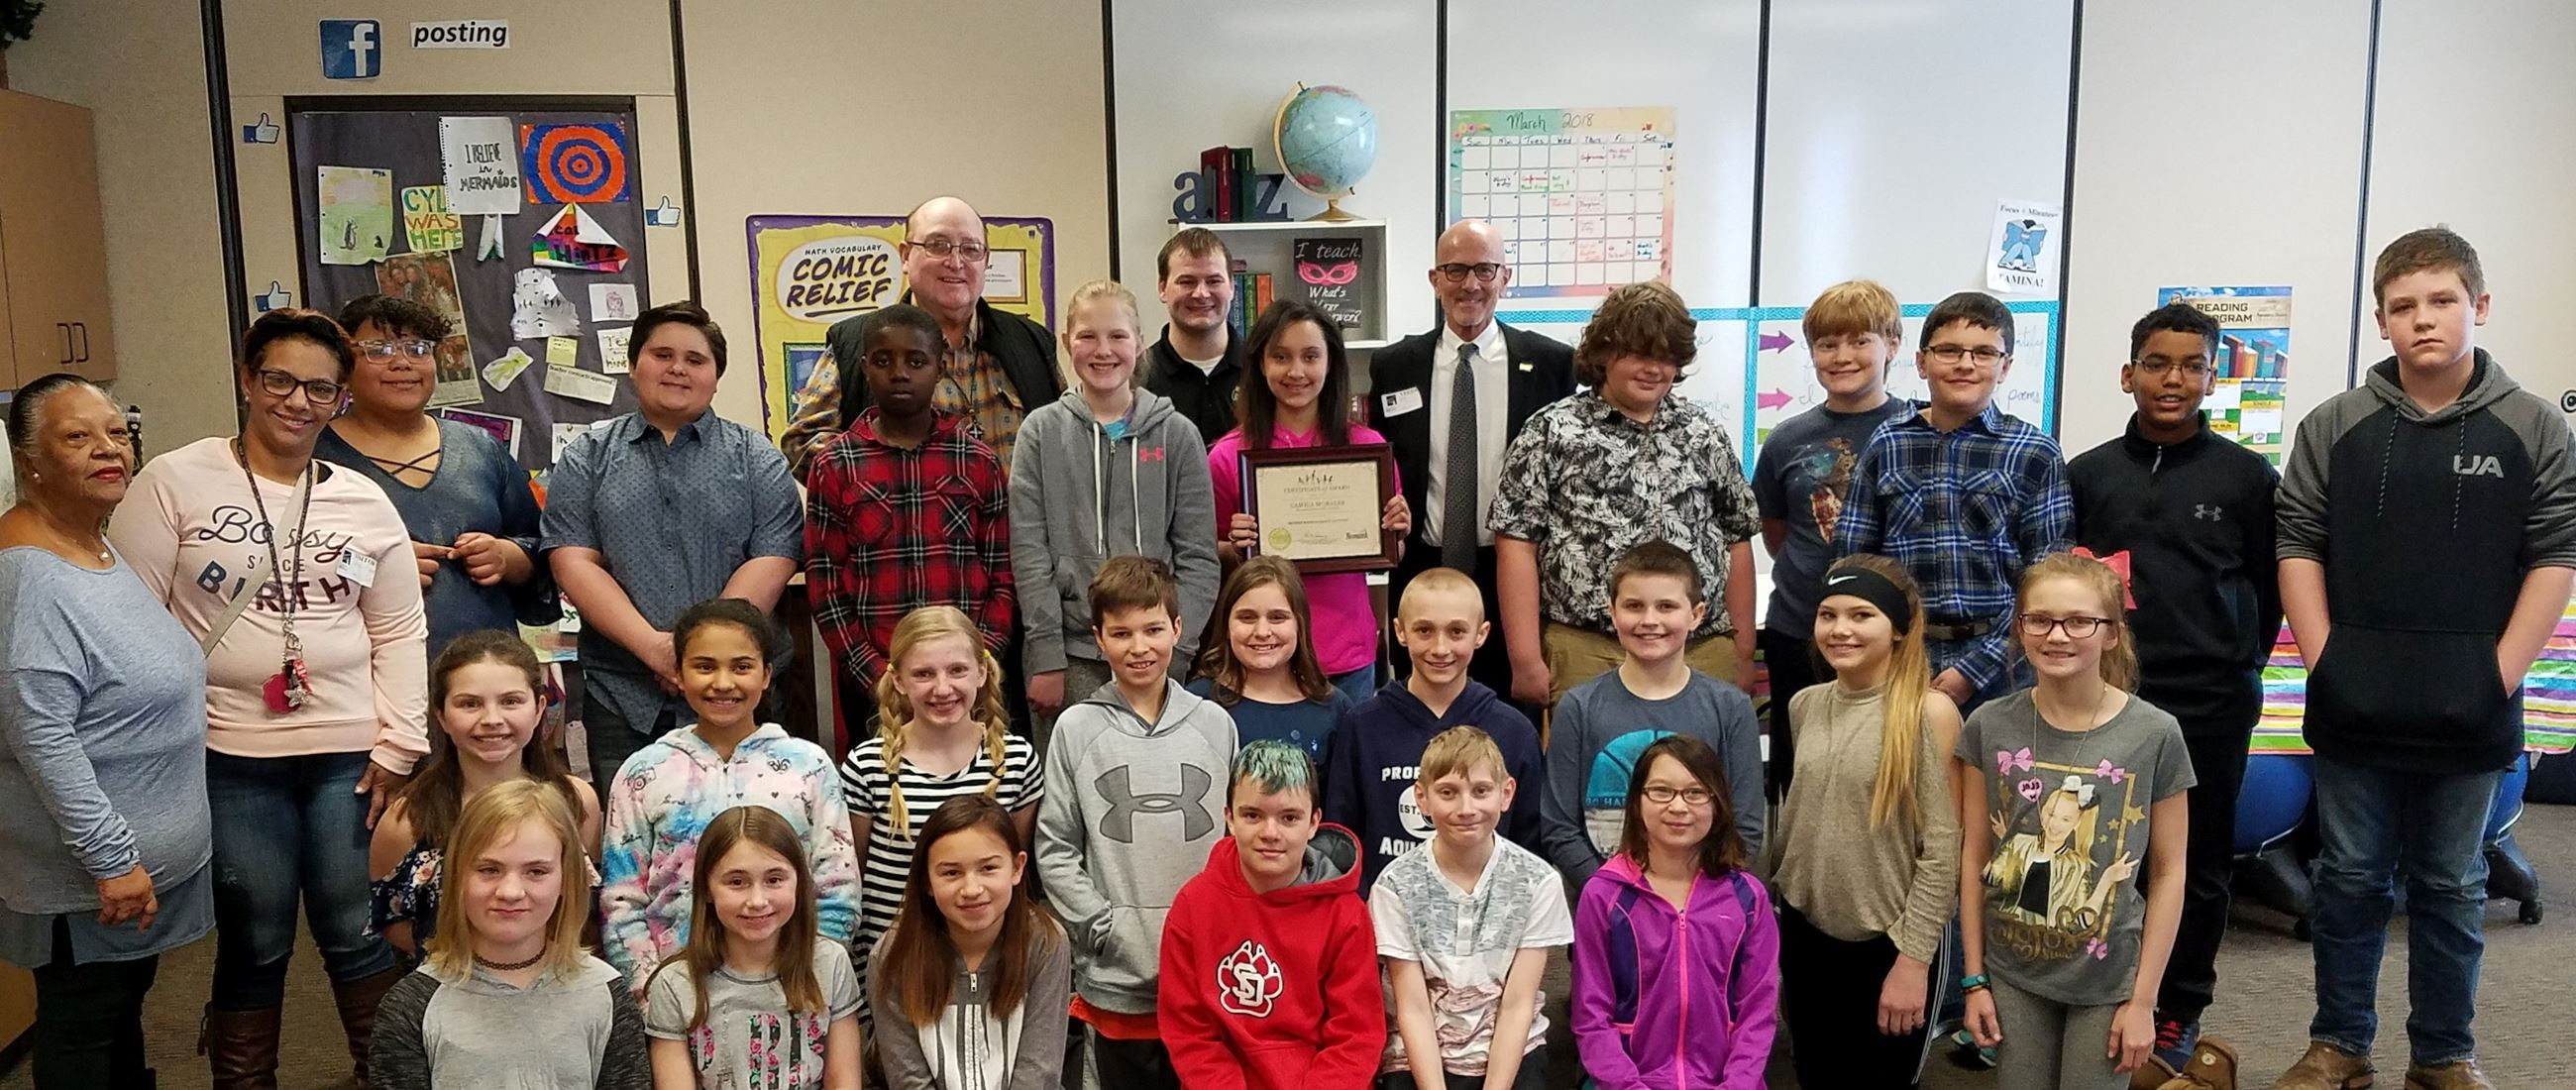 C. Morales Essay Contest award recipient Miller Elementary class